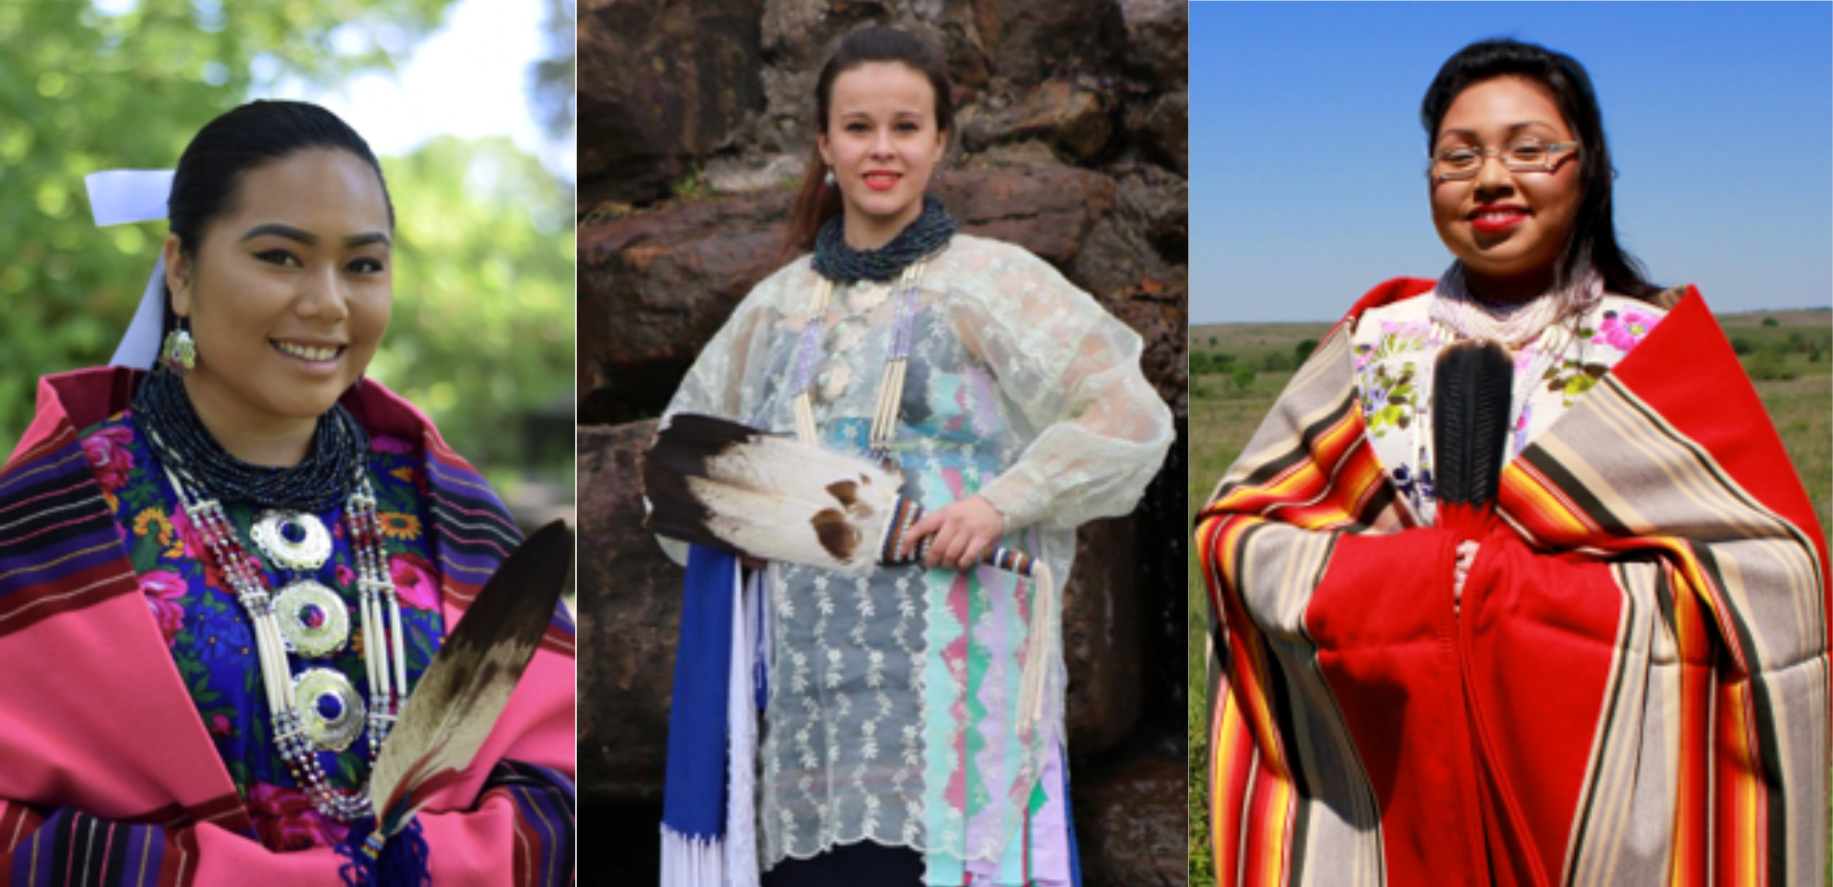 Osage Tribal Princess candidates introduce themselves and ask for your vote on May 28